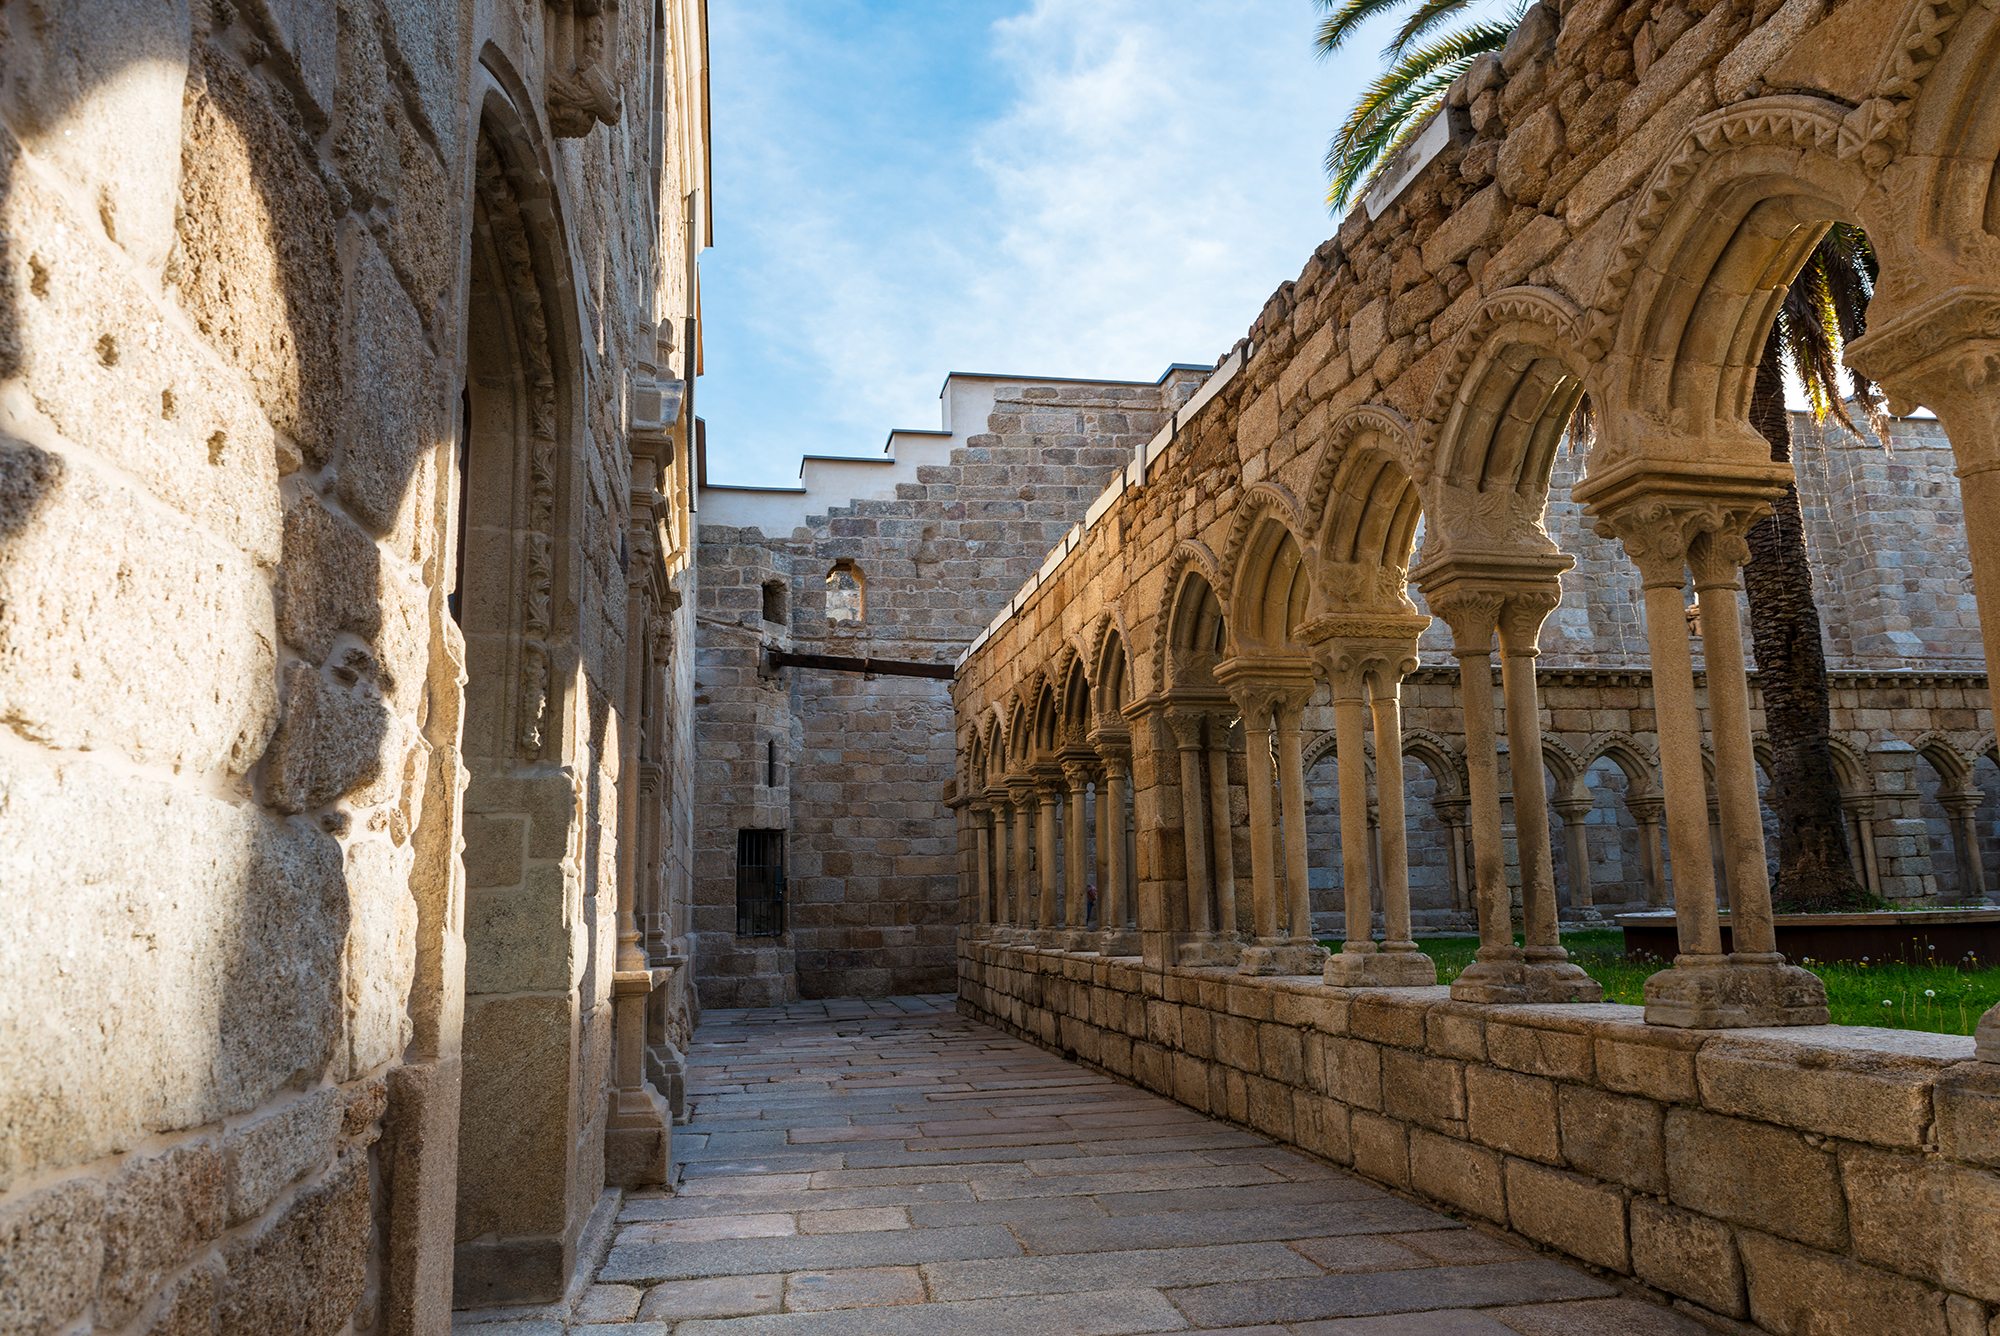 Remains of St Francis Cloister in Ourense